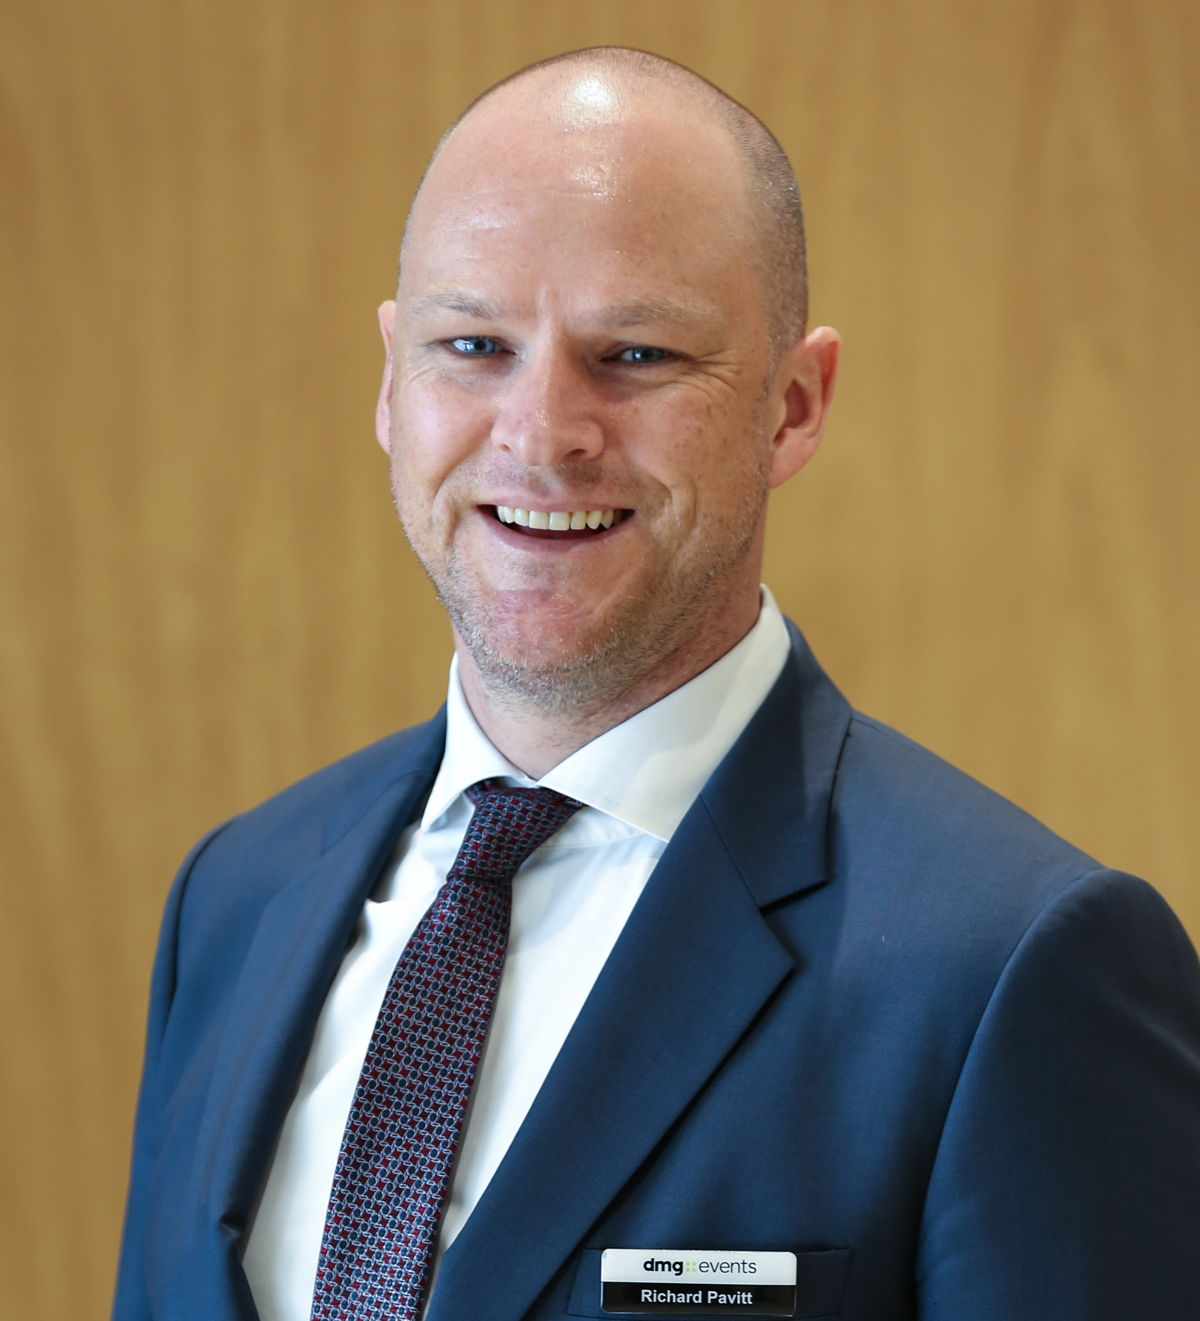 Event Director for The Big 5 Heavy and Middle East Concrete, Richard Pavitt